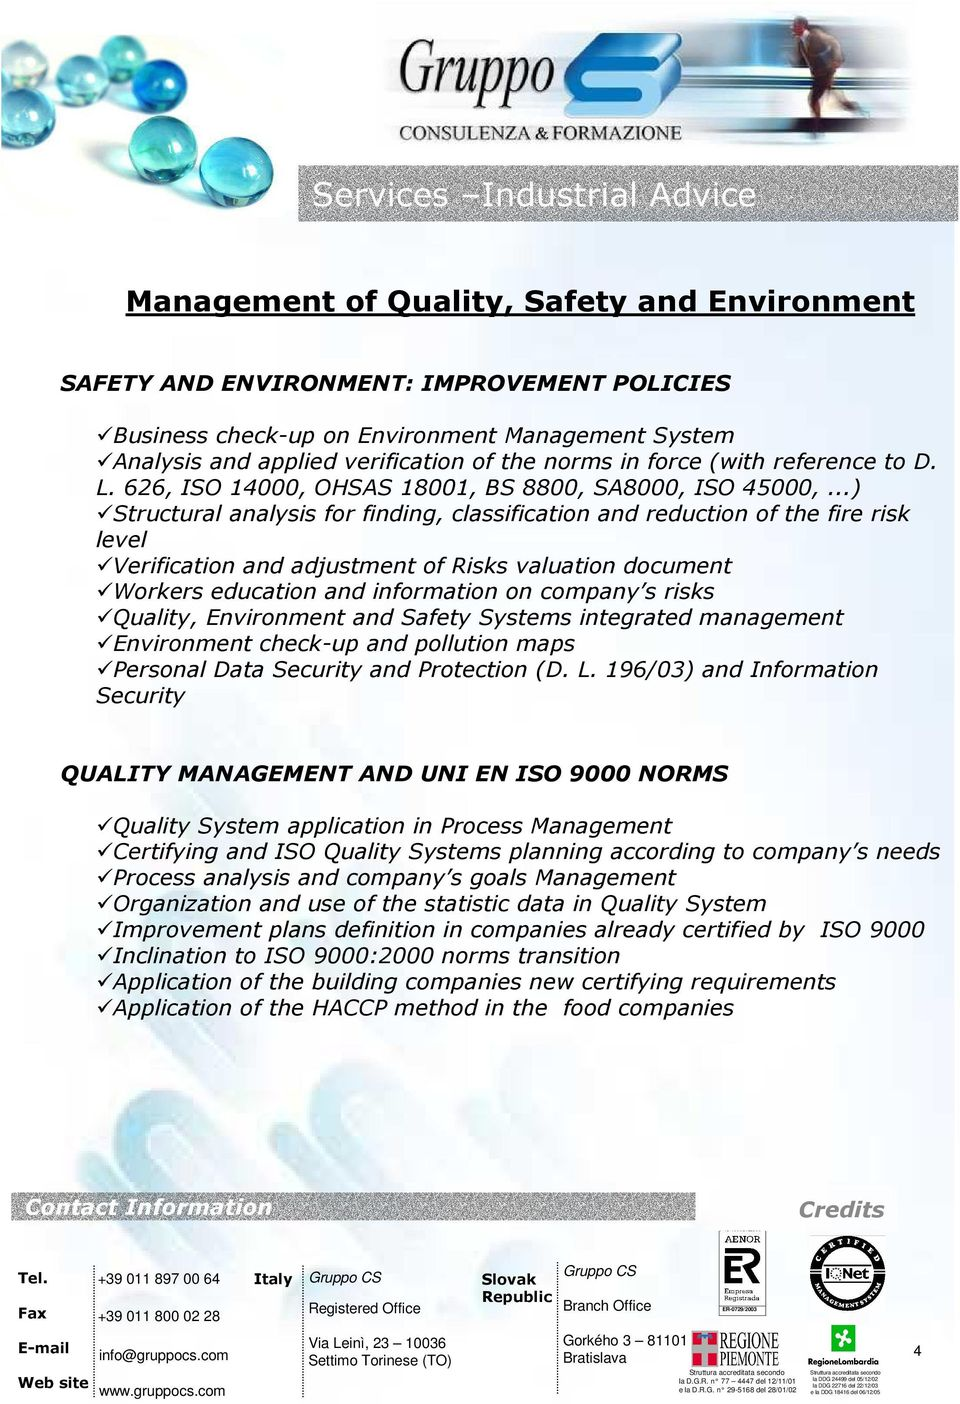 ..) Structural analysis for finding, classification and reduction of the fire risk level Verification and adjustment of Risks valuation document Workers education and information on company s risks